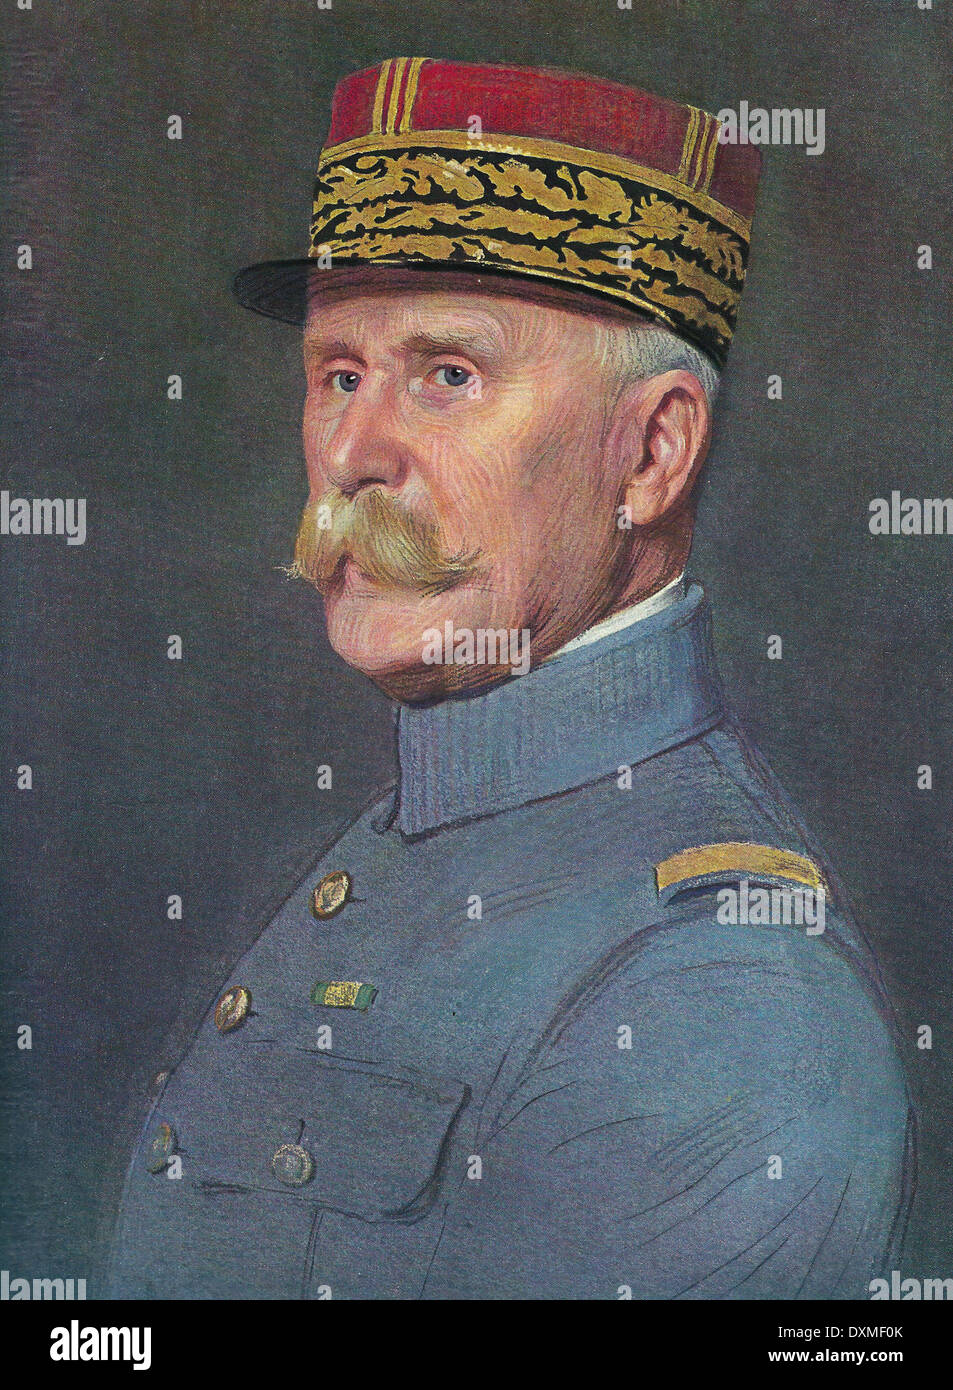 PHILIPPE PETAIN (1856-1951) French soldier in a 1940 magazine illustration - Stock Image